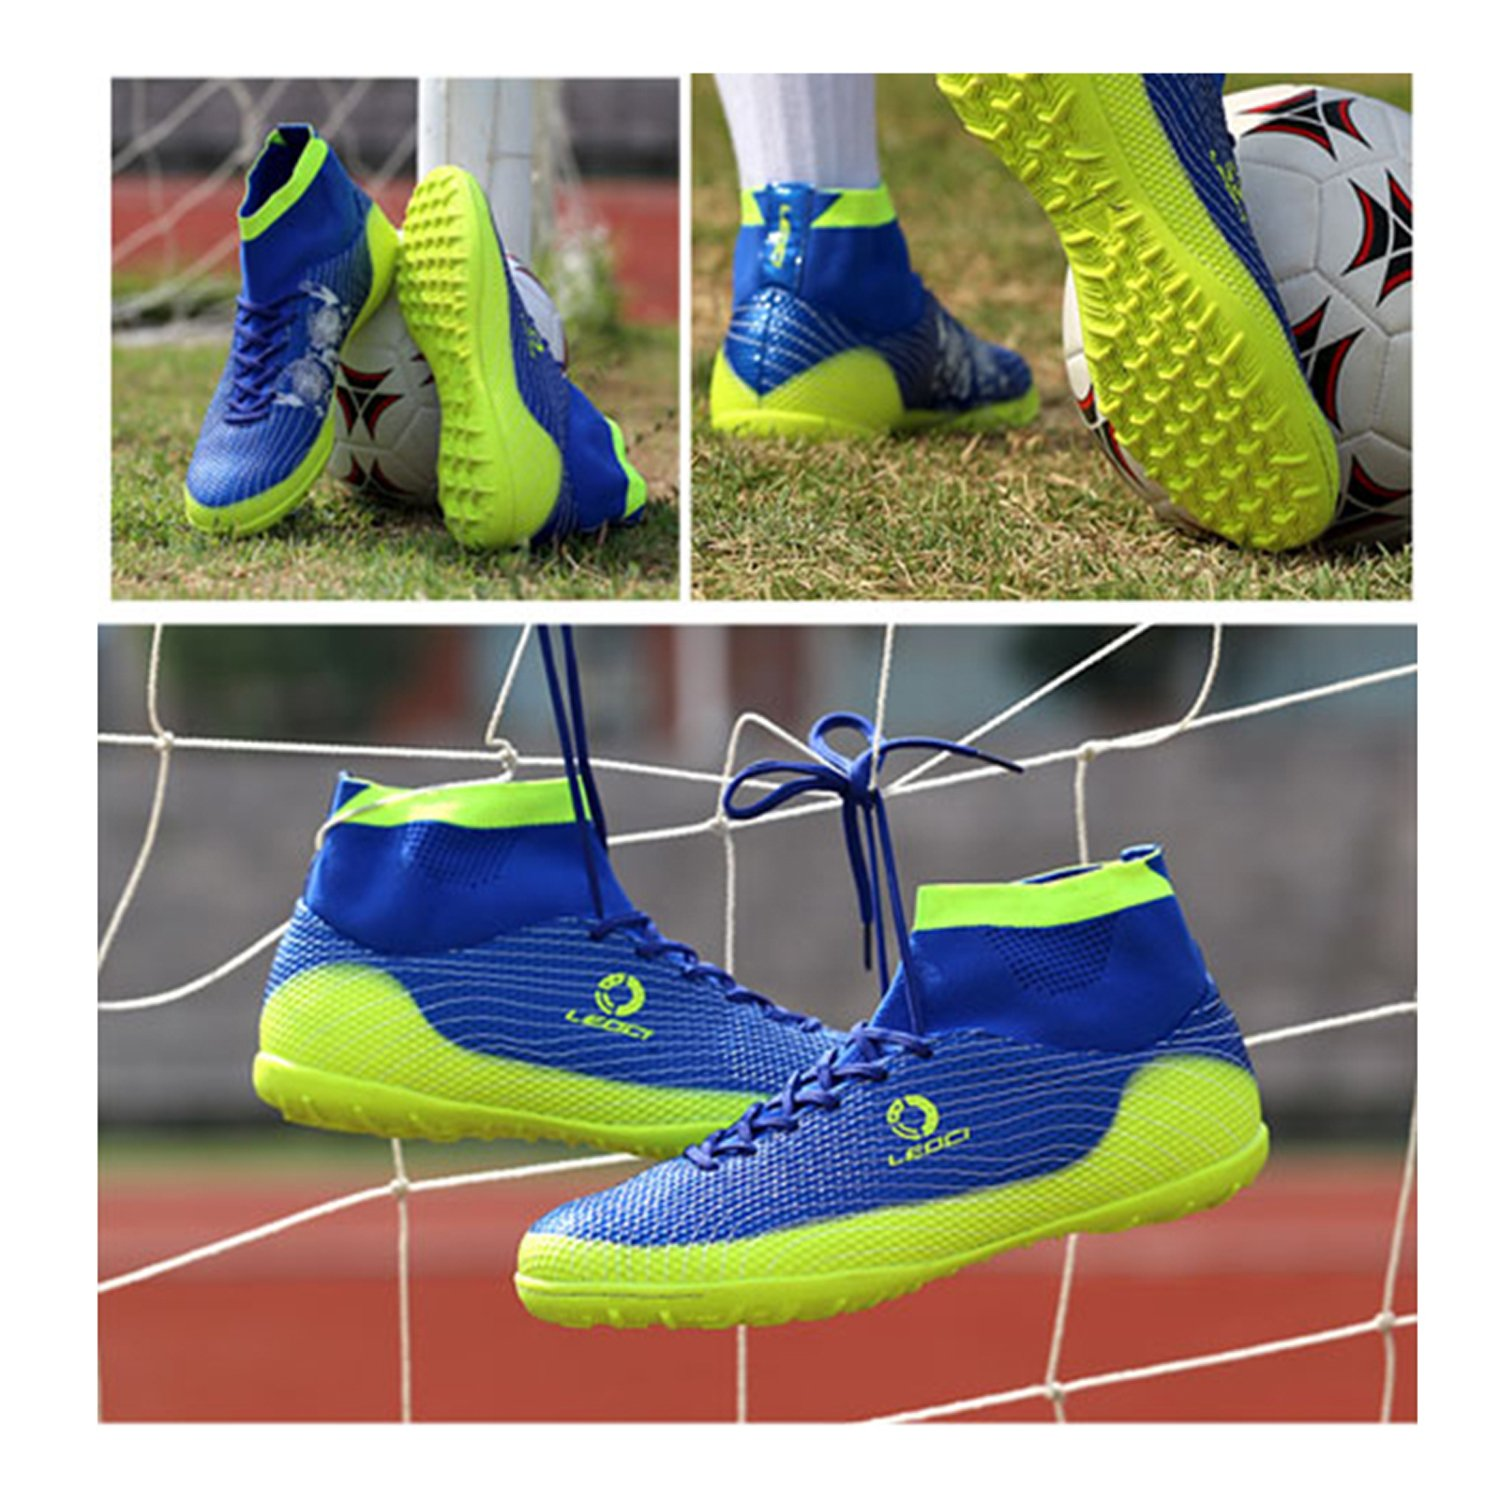 Indoor Outdoor Soccer Shoes Athletic Turf Mundial Team Cleat Football Boots Running Sports Lightweight Breathable Anti-Skid Damping Shoes for Men and Kids BADIER